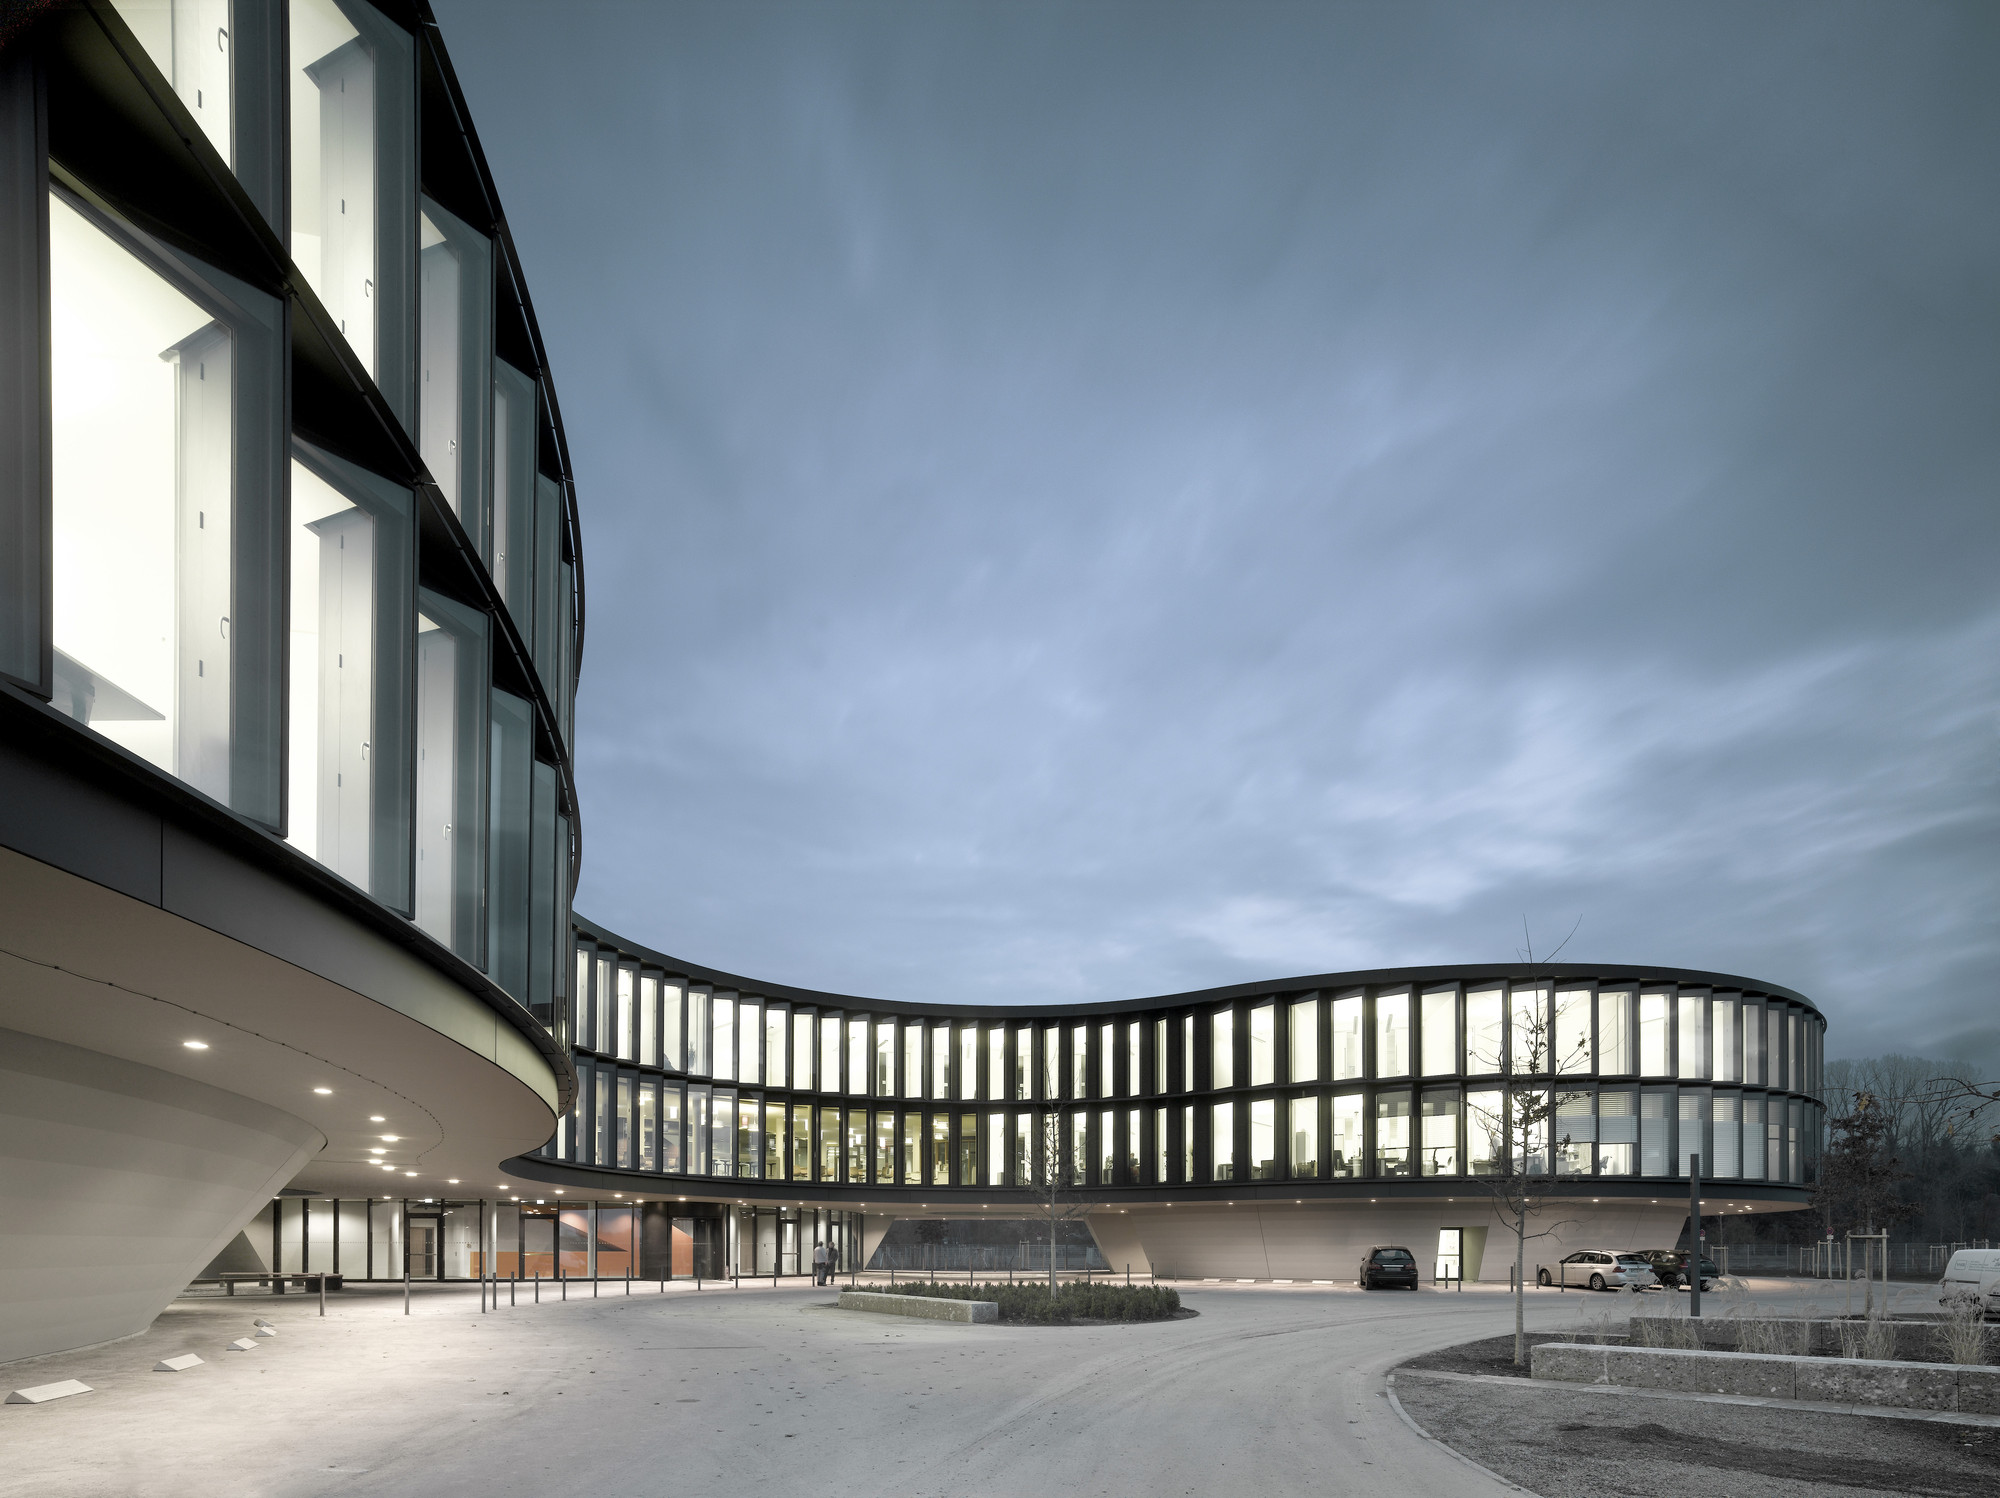 ESO Headquarters Extension / Auer Weber, © Roland Halbe